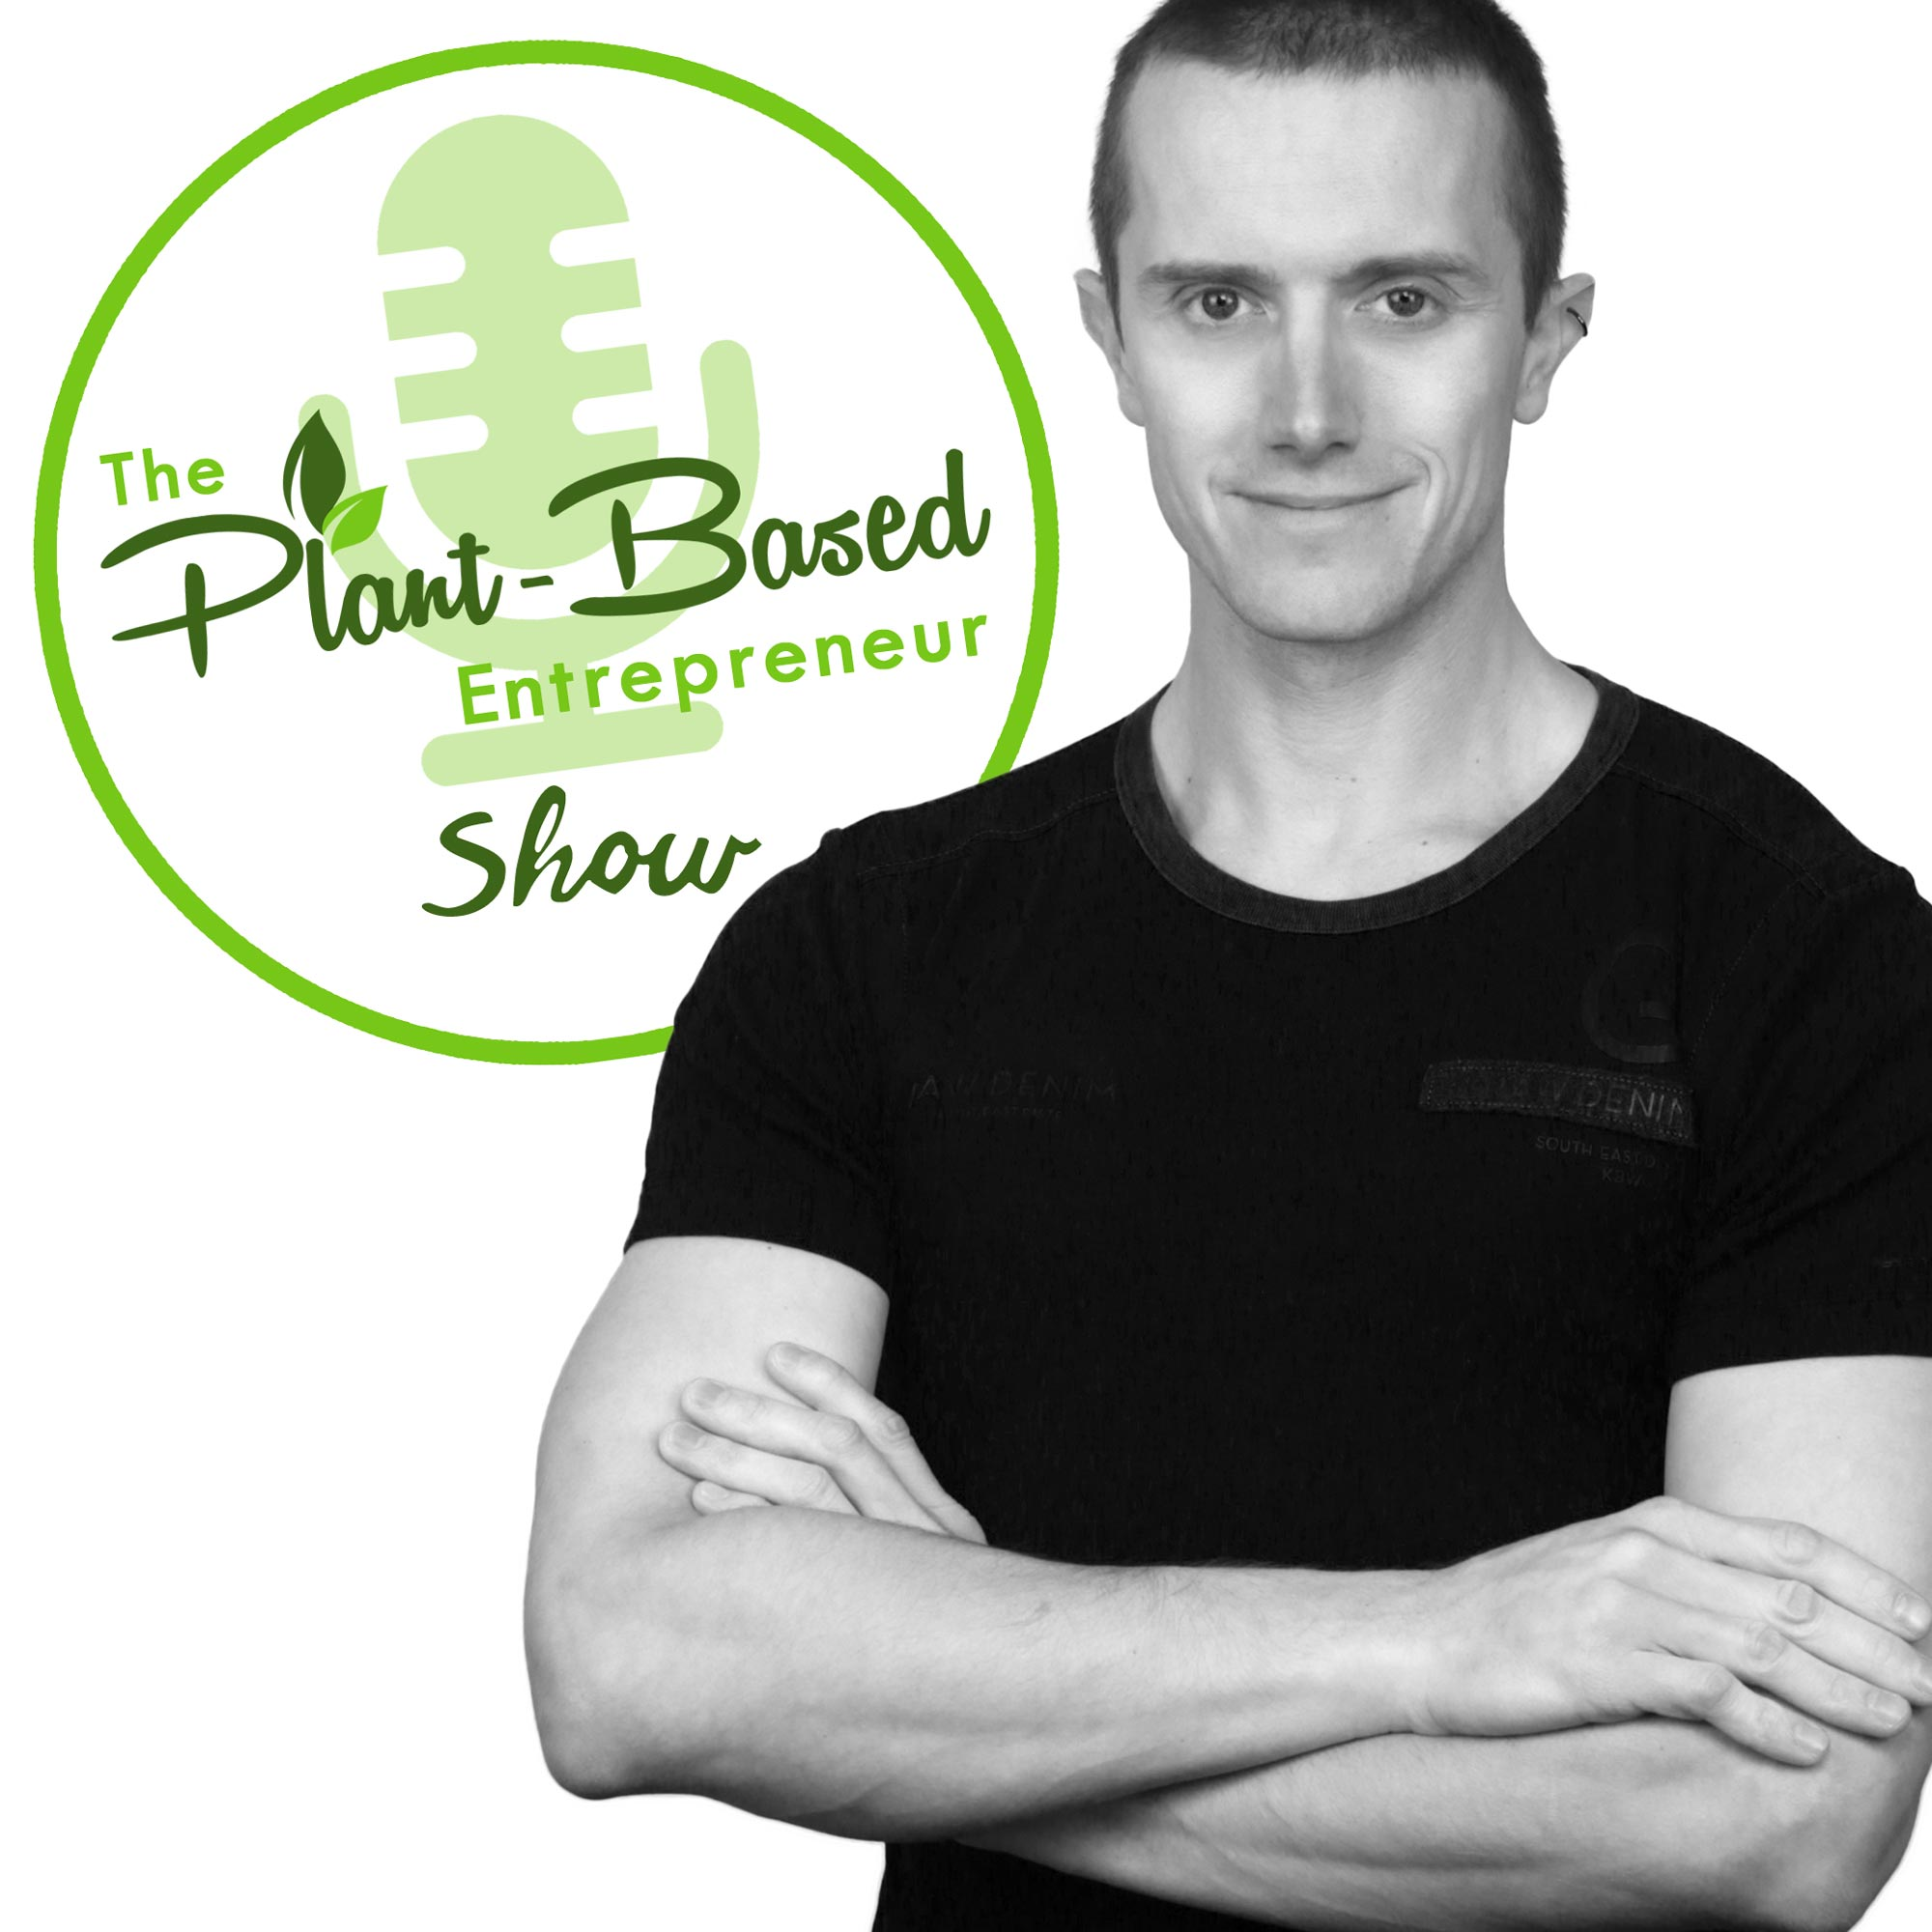 The Plant-Based Entrepreneur Show